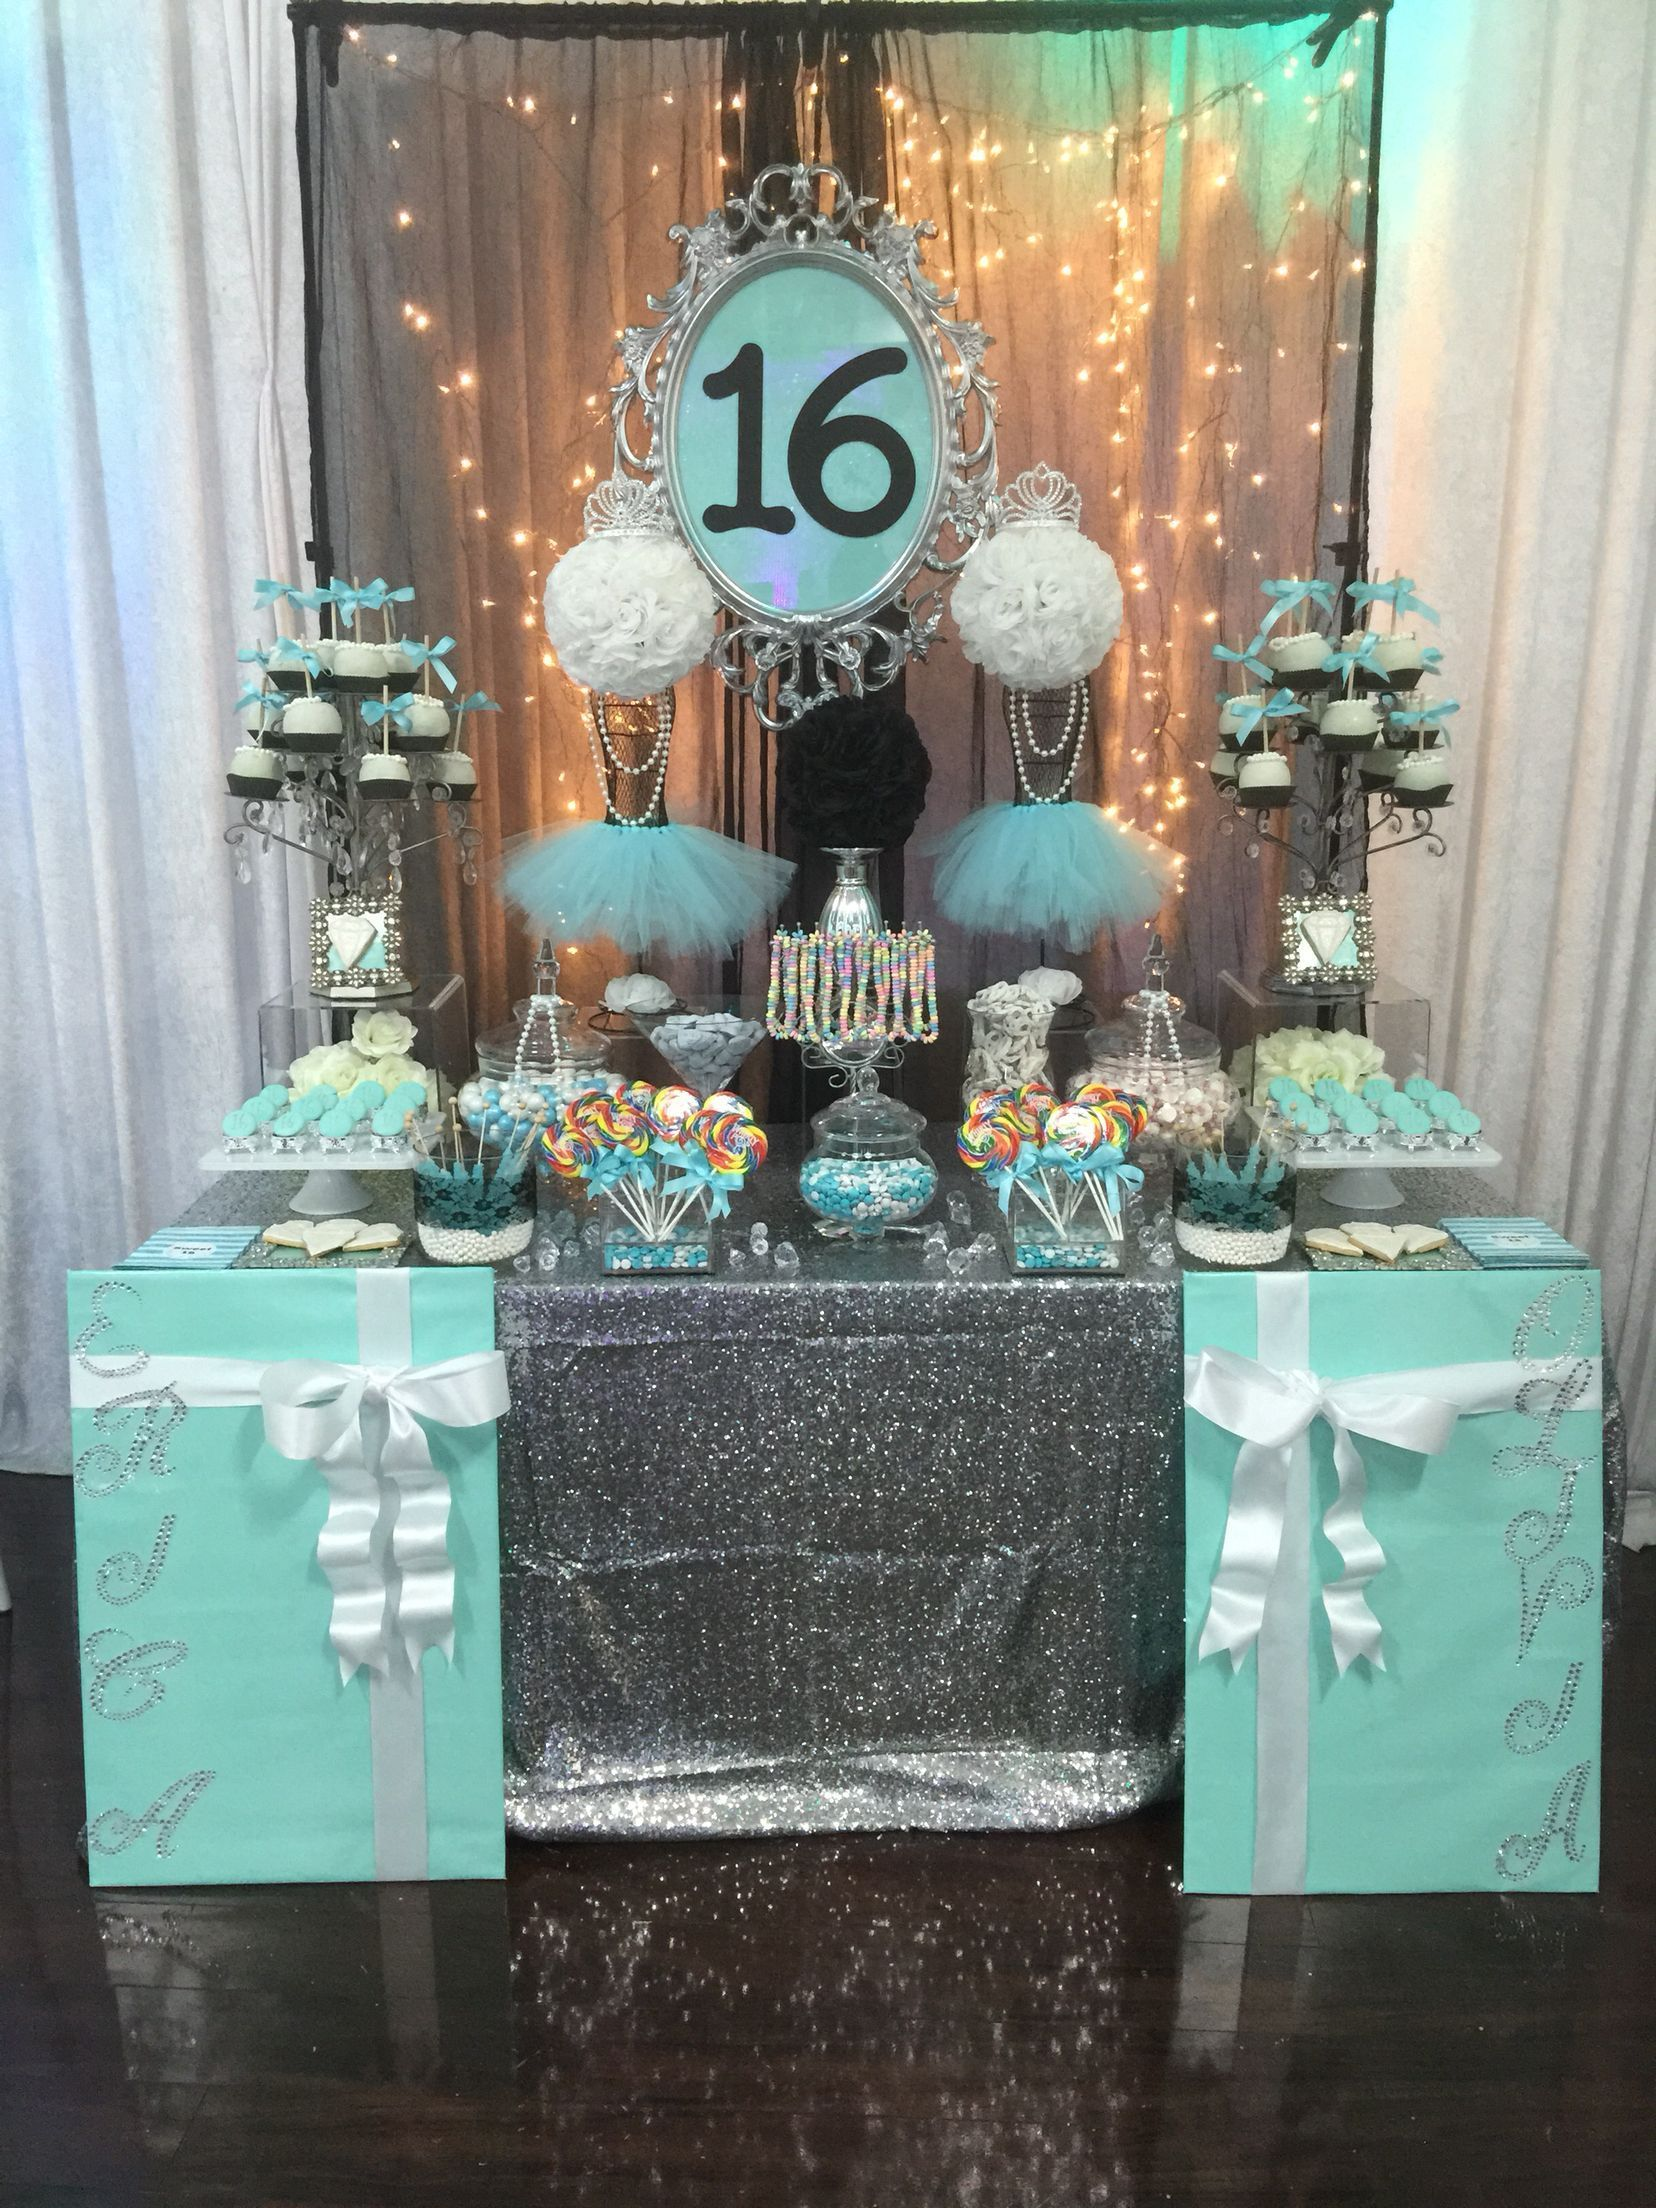 34 Best Wedding Table Display Ideas That Make Beauty Your Party #sweetsixteen